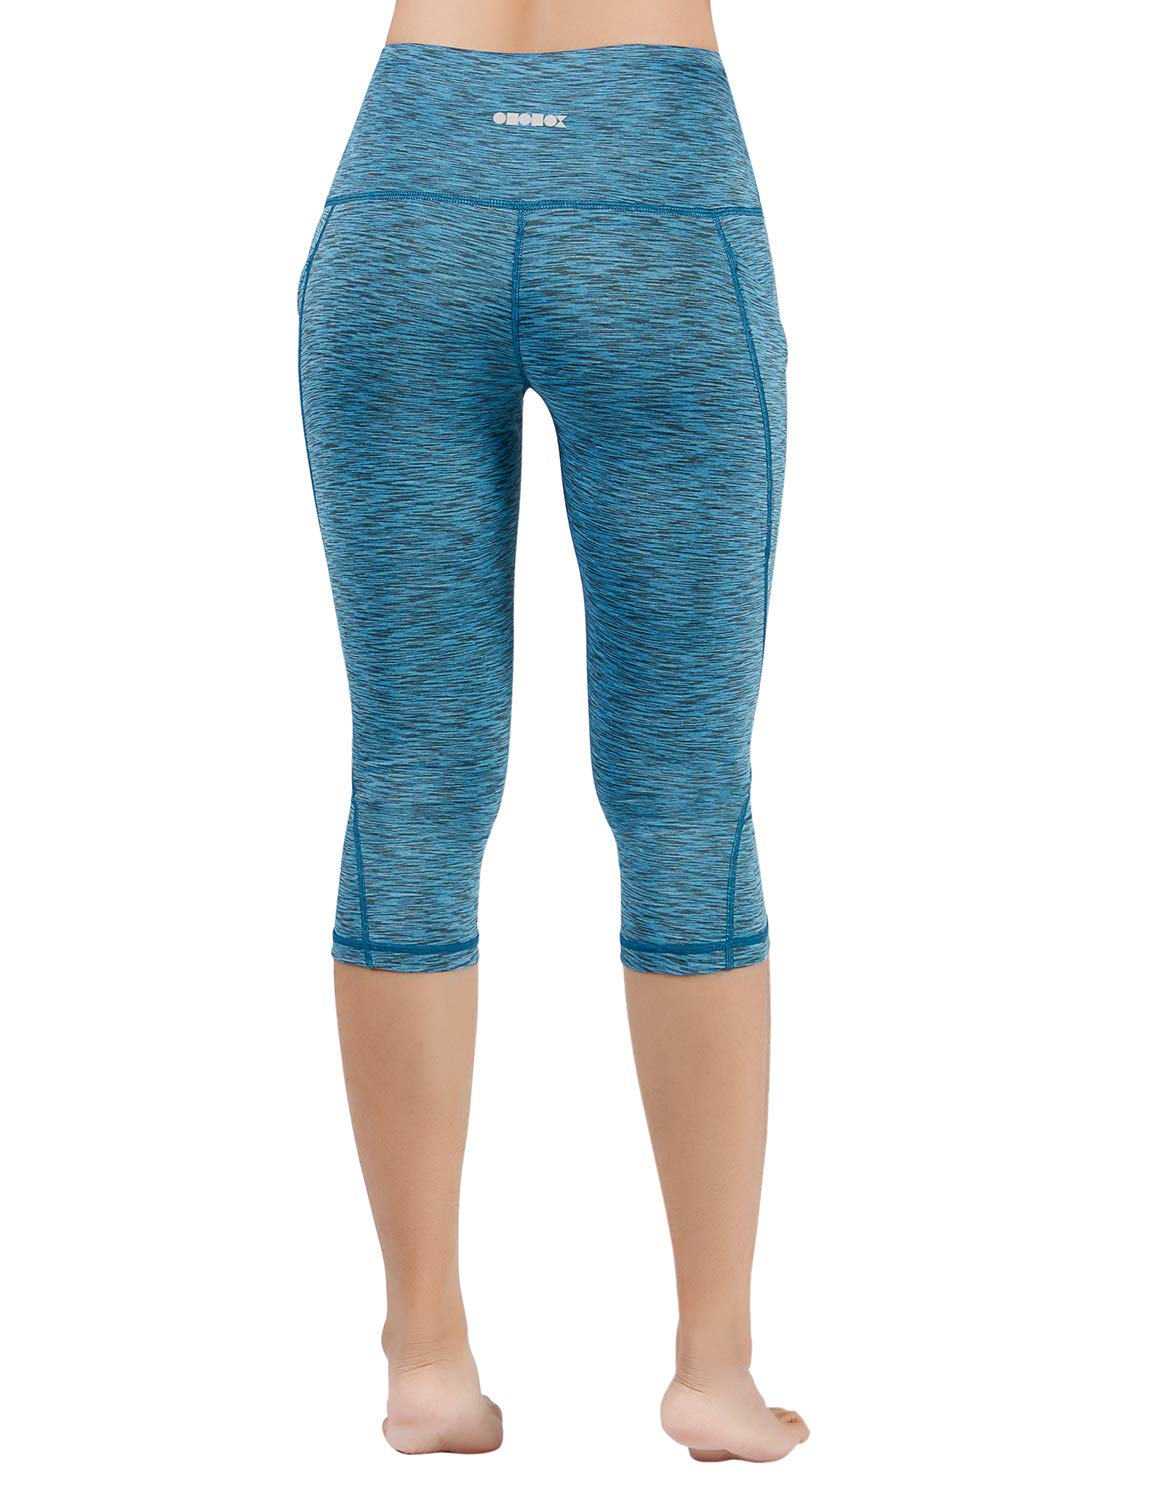 ODODOS High Waist Out Pocket Yoga Capris Pants Tummy Control Workout Running 4 Way Stretch Yoga Leggings,SpaceDyeBlue,X-Small by ODODOS (Image #3)